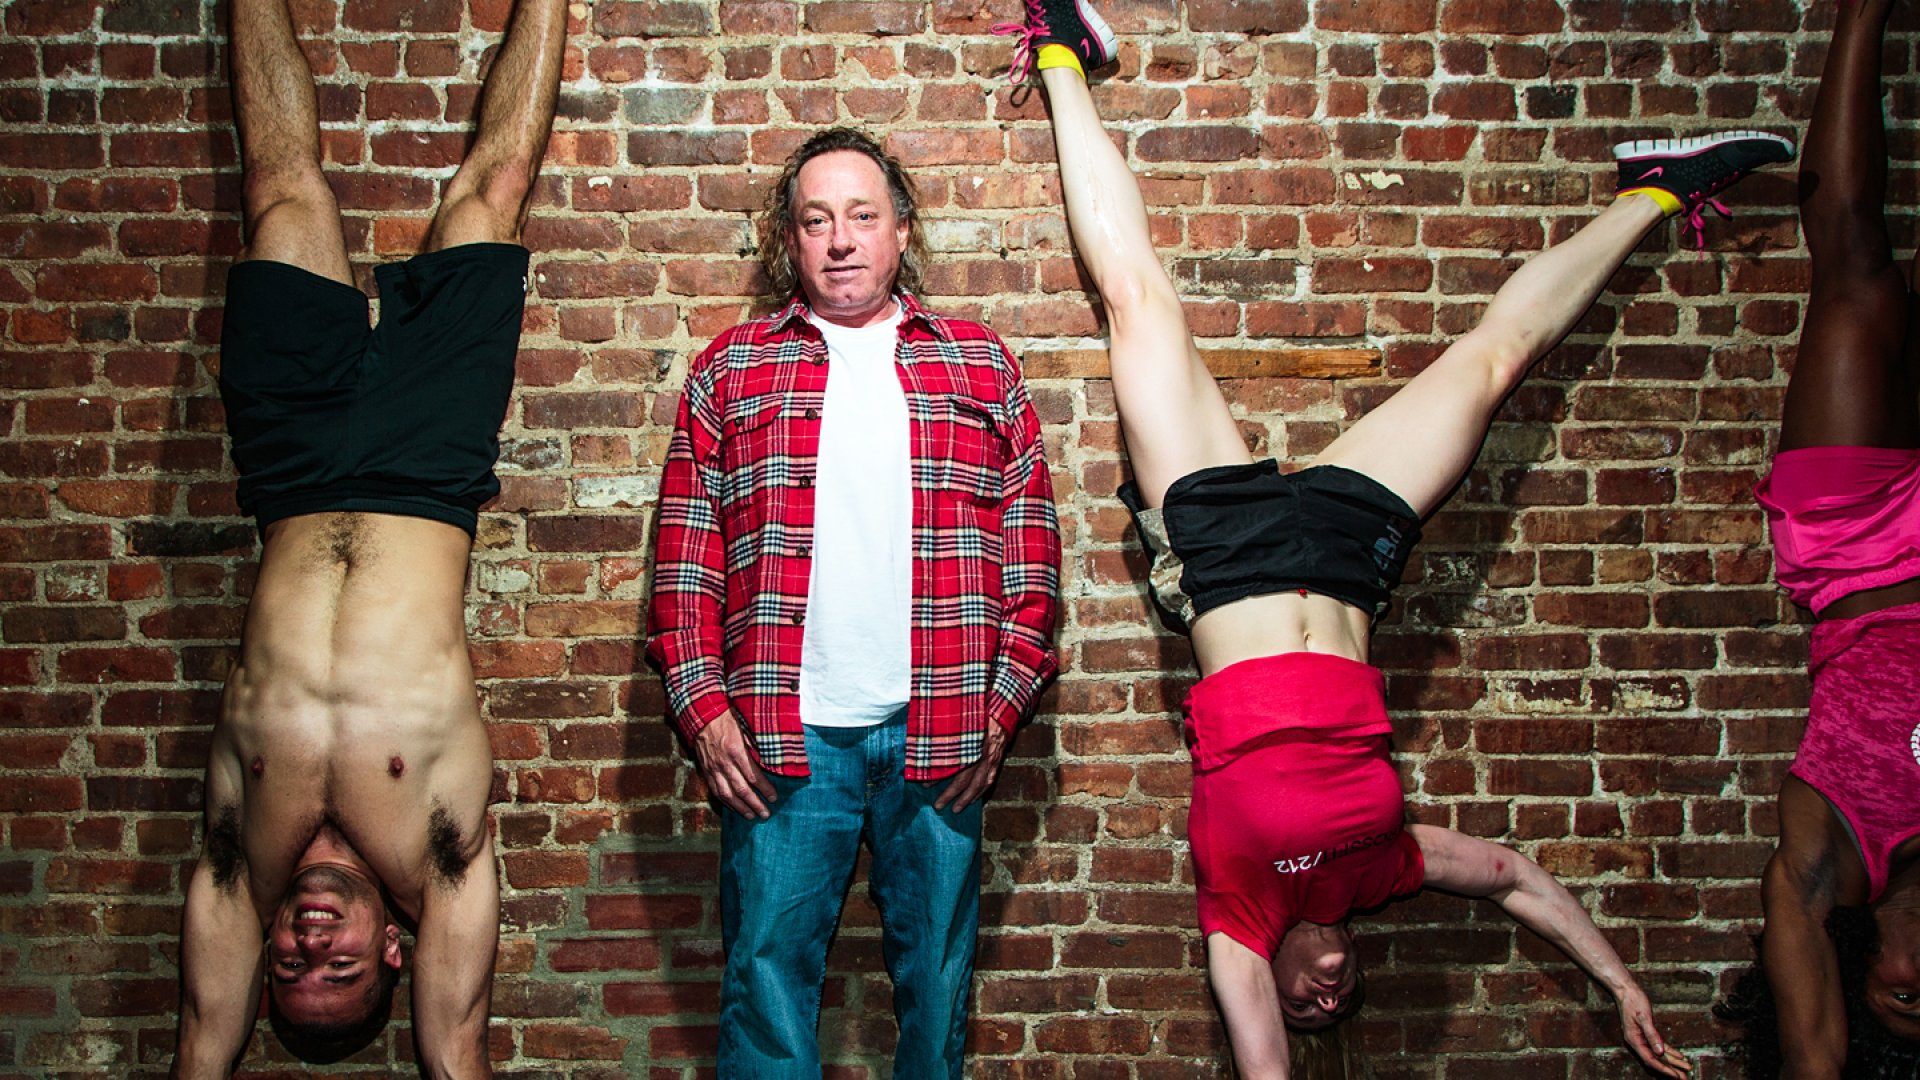 Greg Glassman, inventor of the CrossFit fitness system, at an affiliate gym in New York City